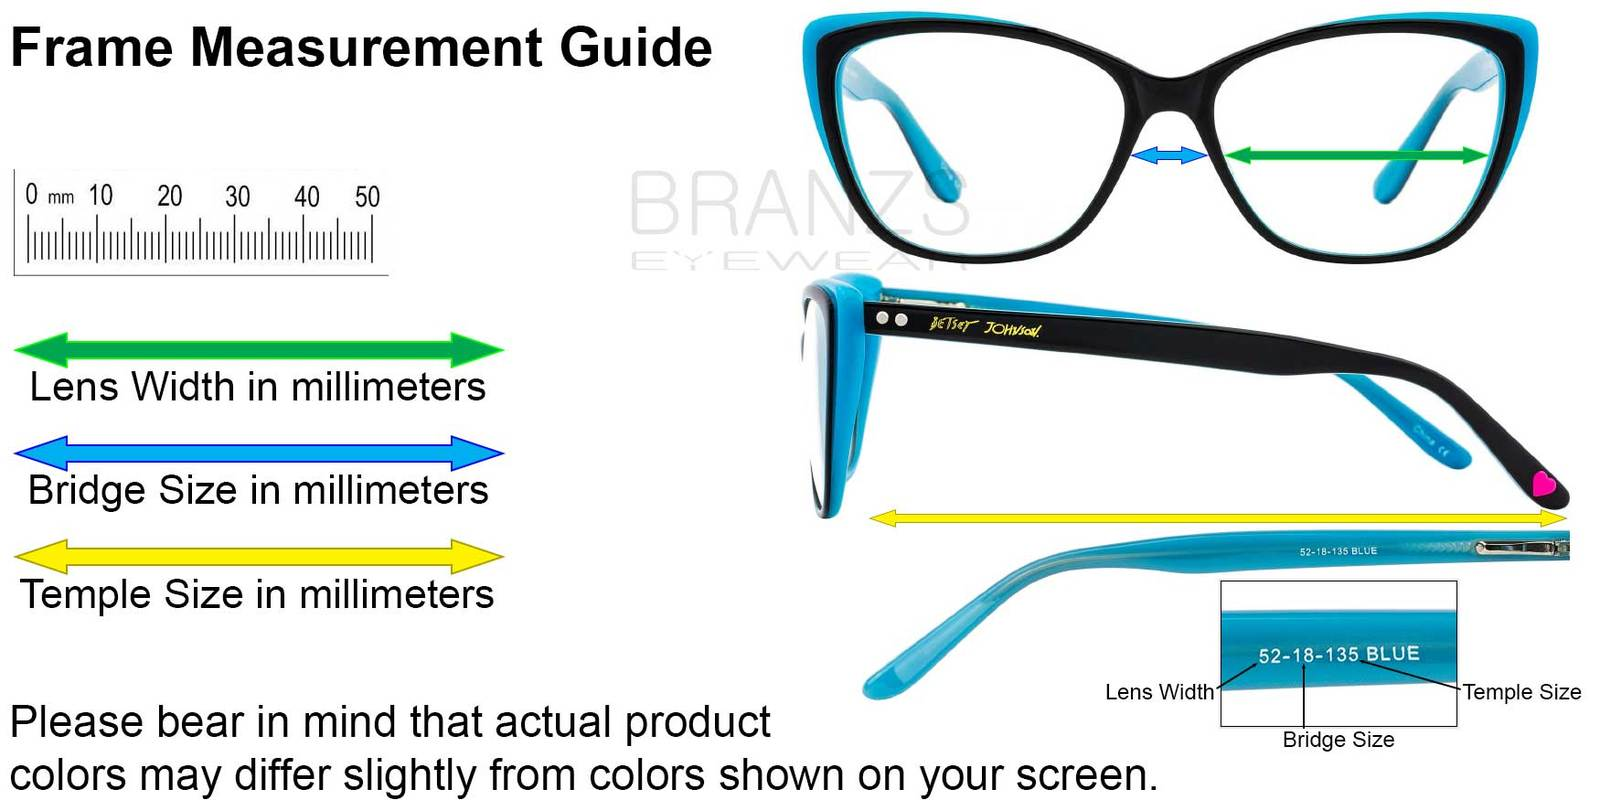 How To Measure Your Bridge Size For Glasses - Famous Glasses 2018